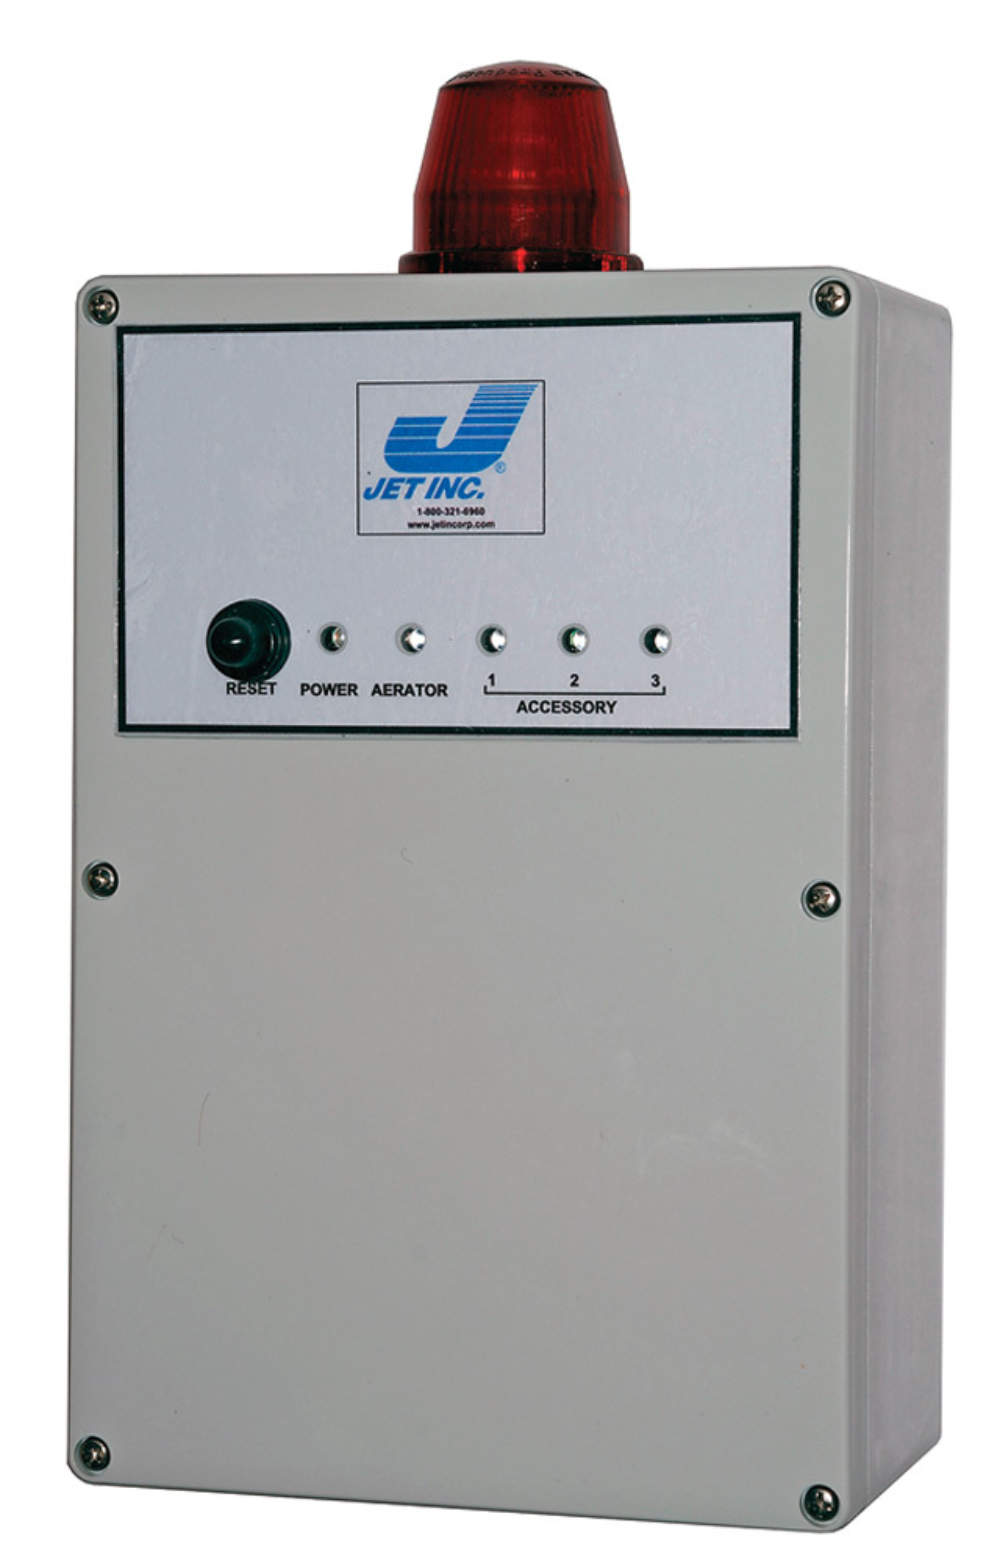 Alarms Controls And Monitoring Systems Onsite Installer